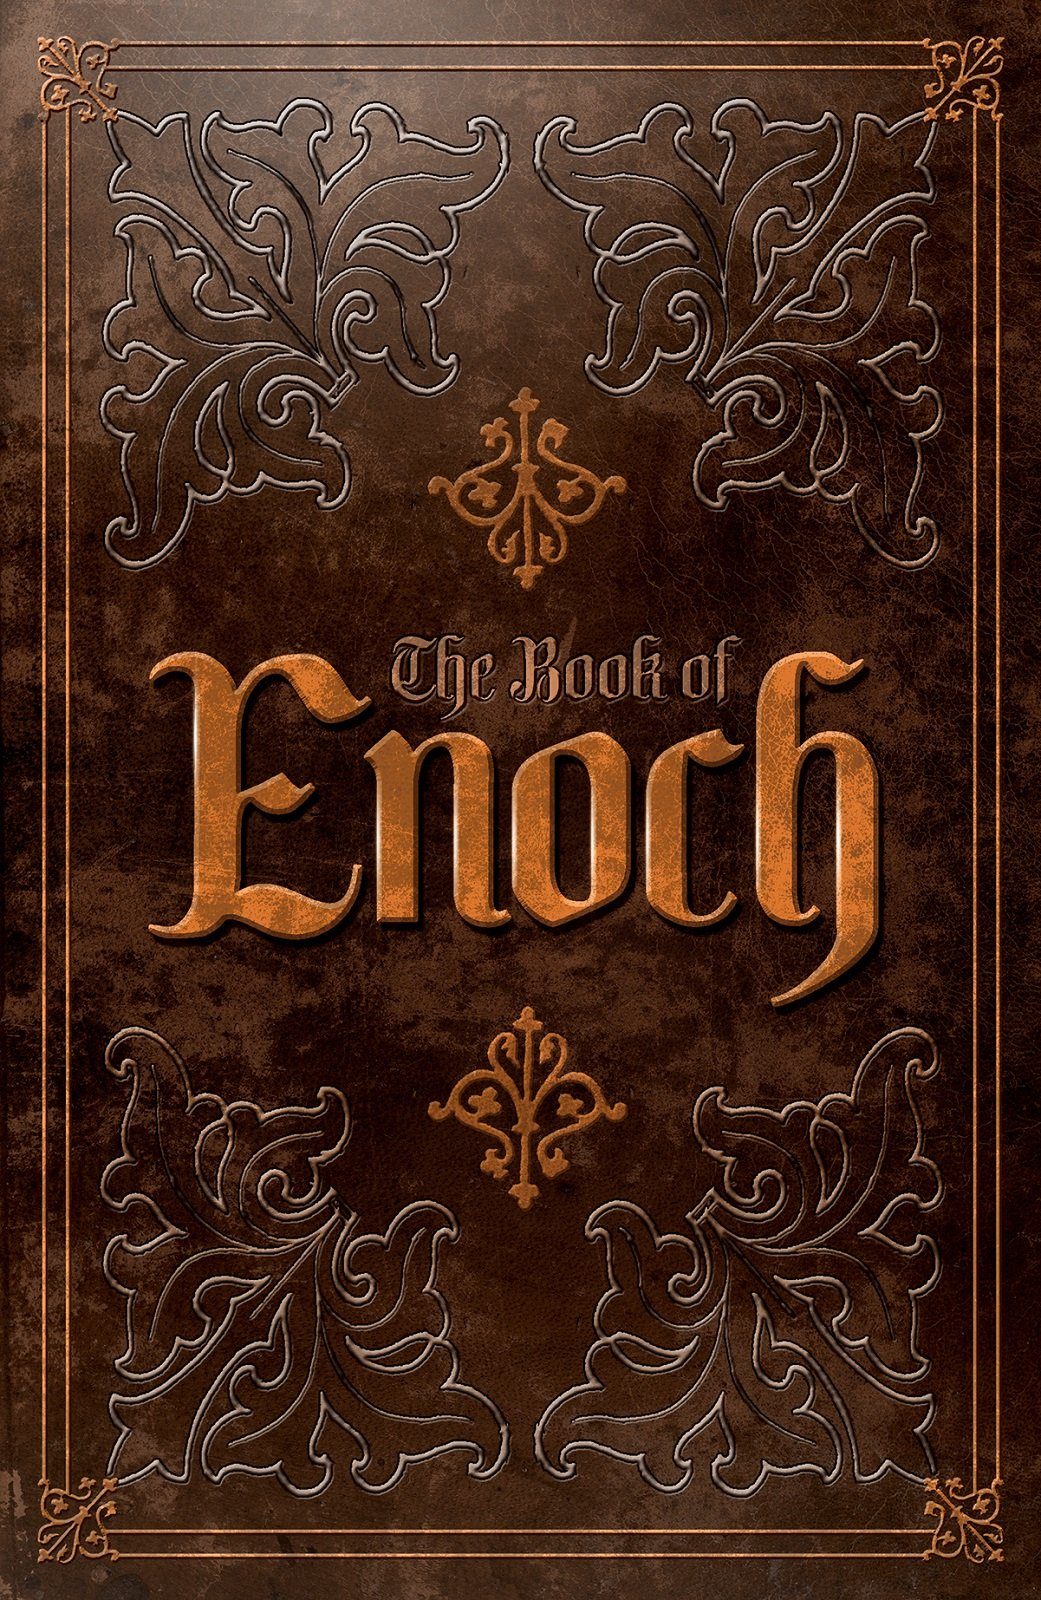 The Book of Enoch Hardcover Ancient Jewish Religious Books Bible History World